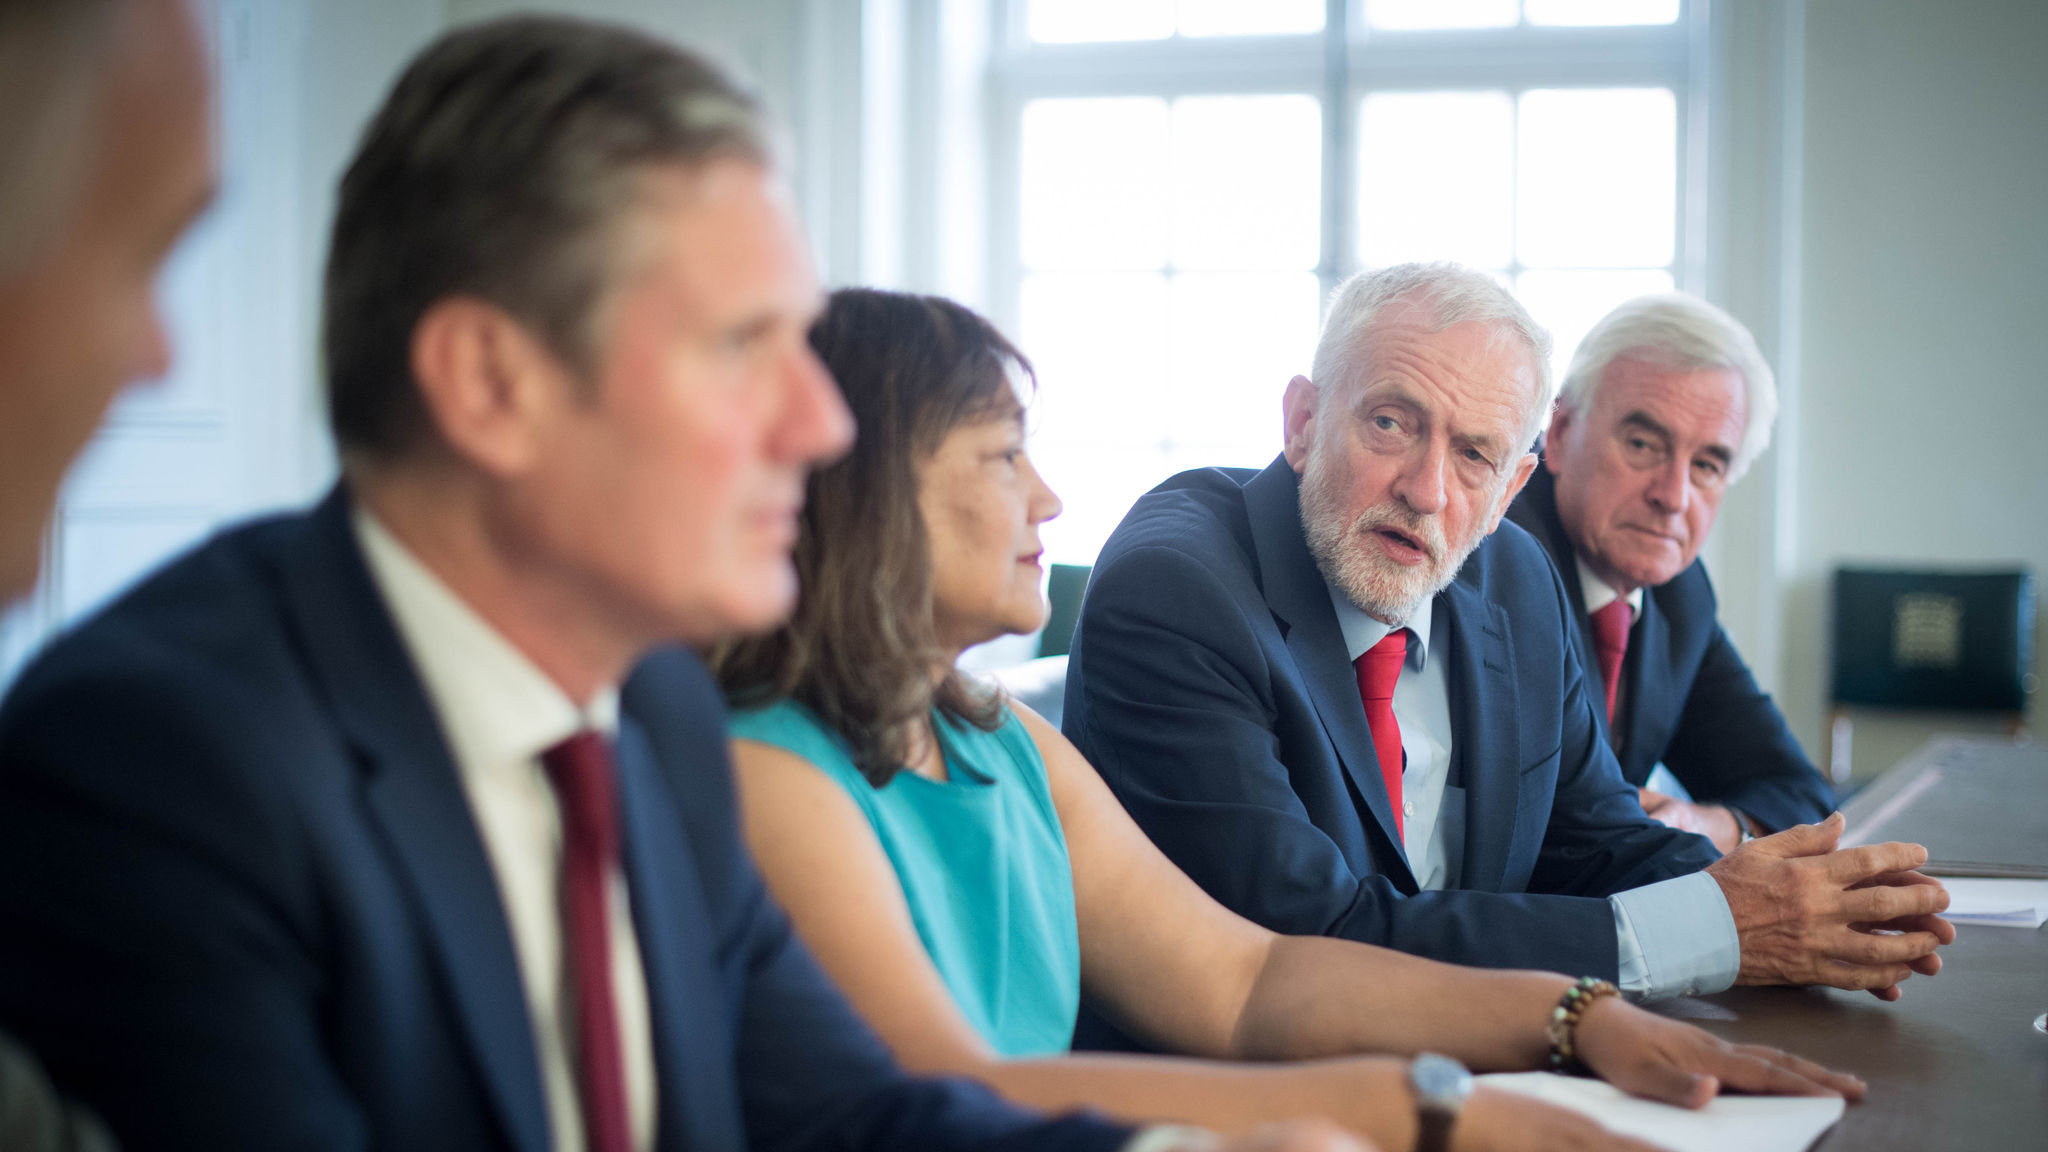 Opposition groups agree legal strategy to block no-deal Brexit